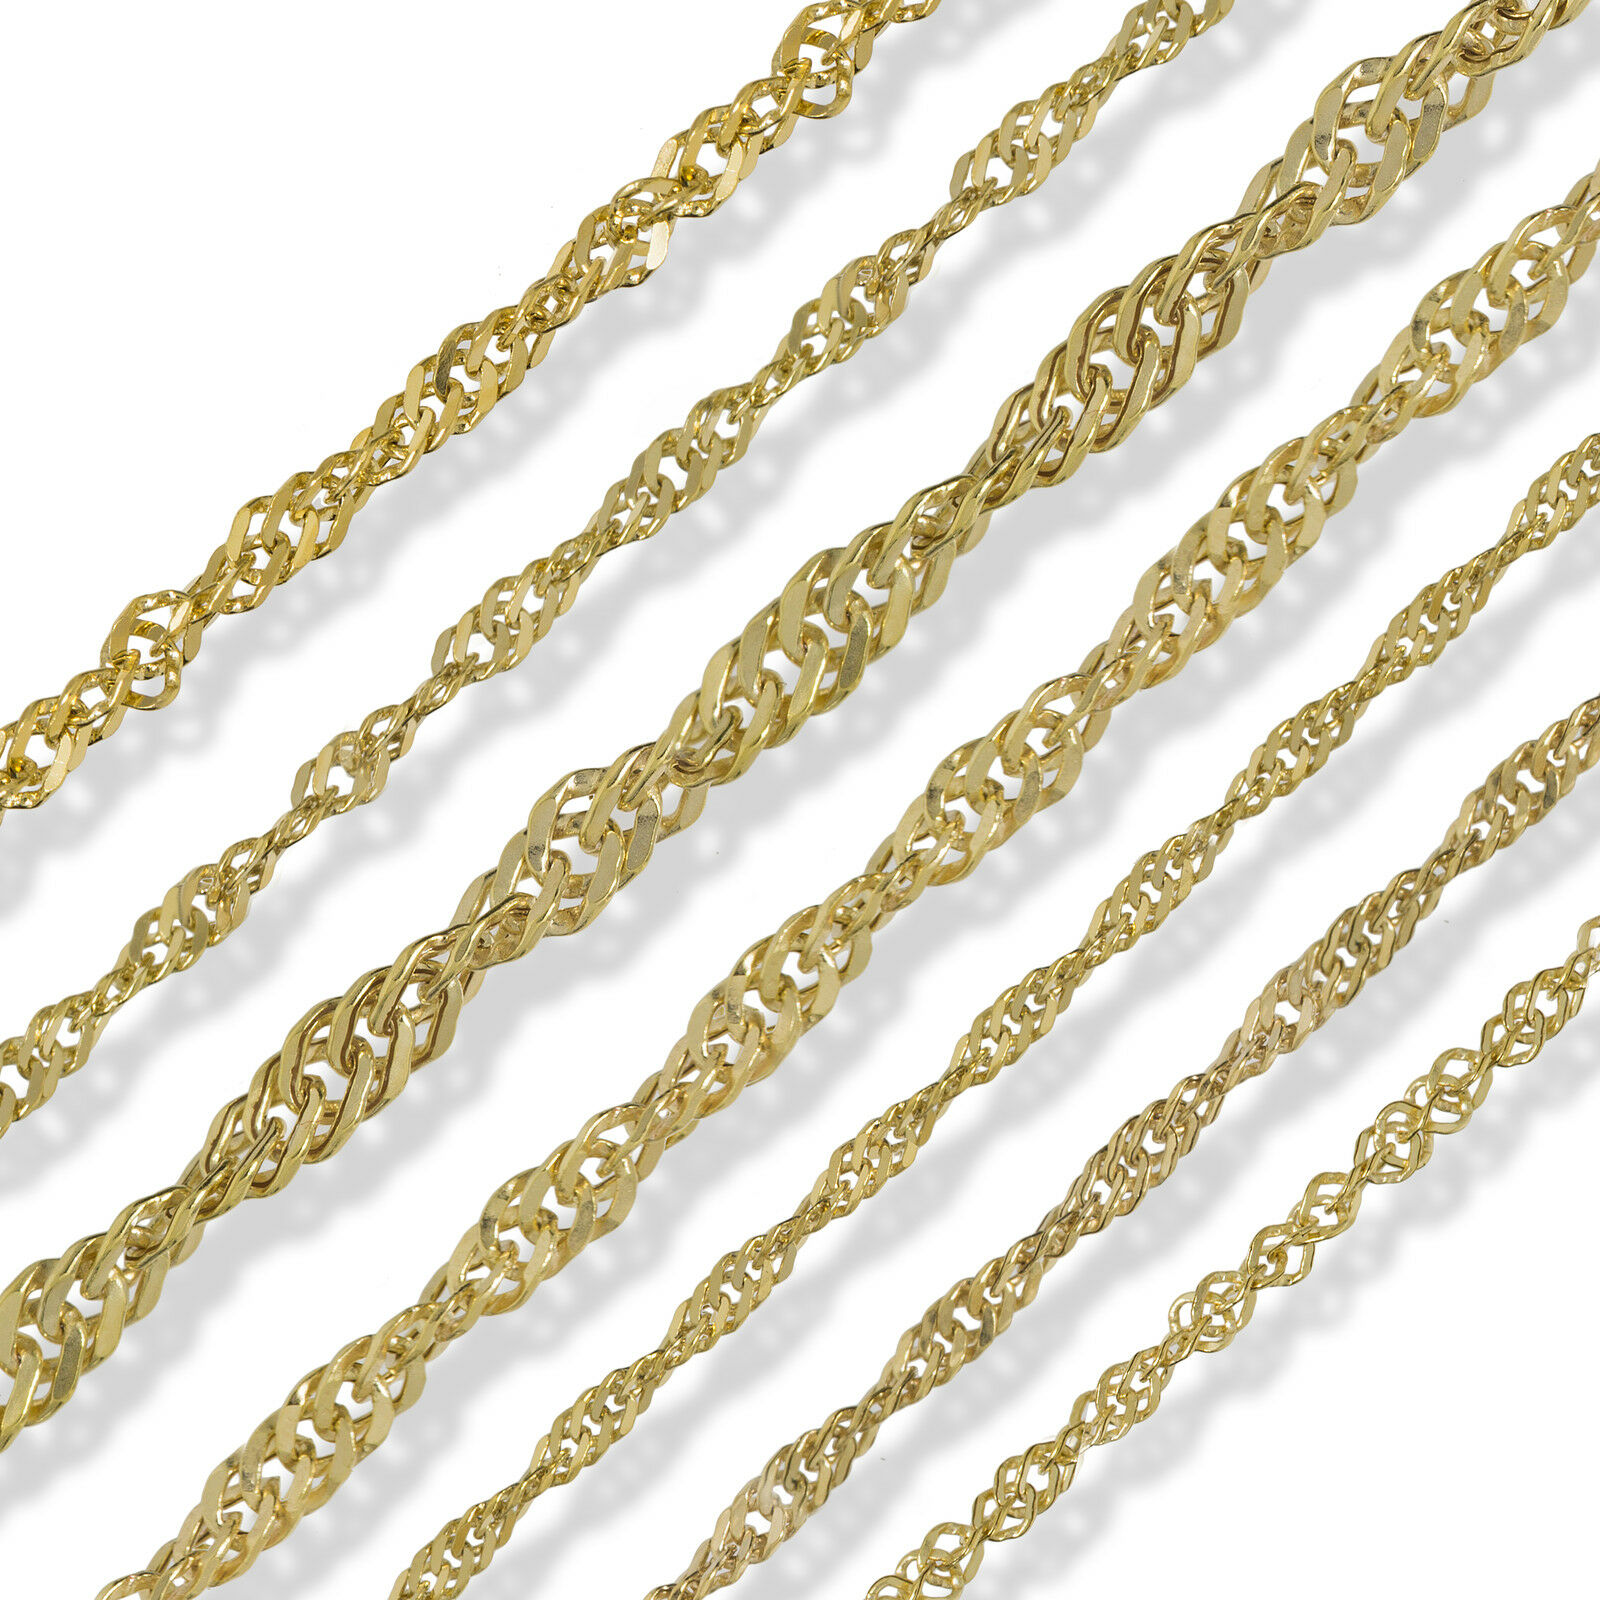 9CT GOLD ROPE CHAIN 16 18 20 22 24 28 BELCHER PRINCE OF WALES POW NECKLACE